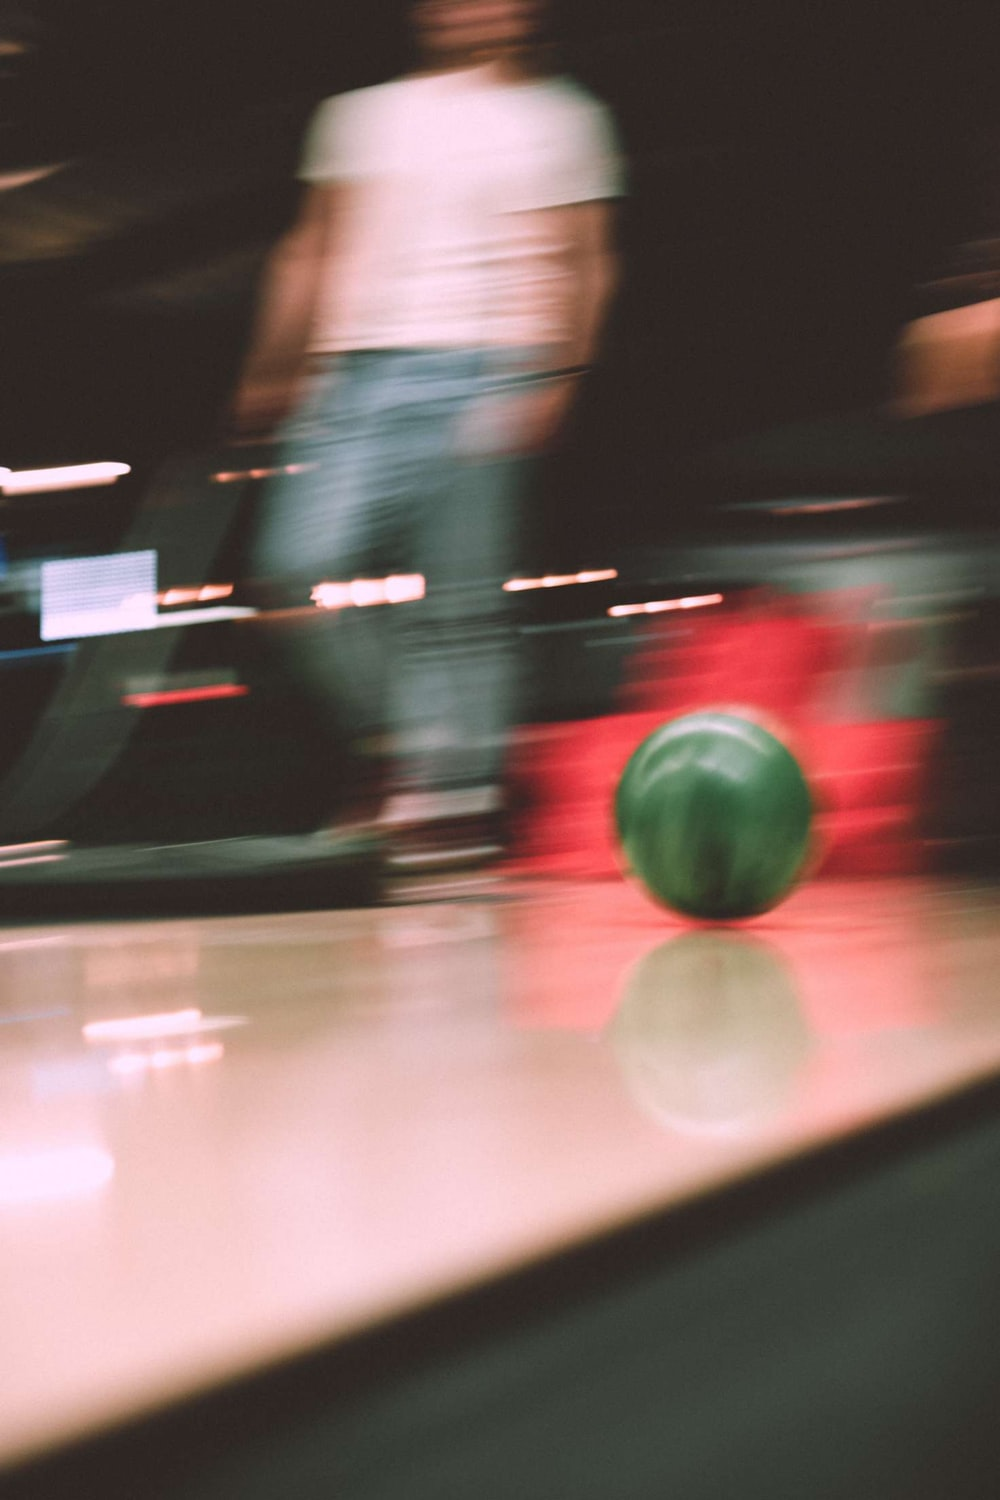 red round ball on the floor